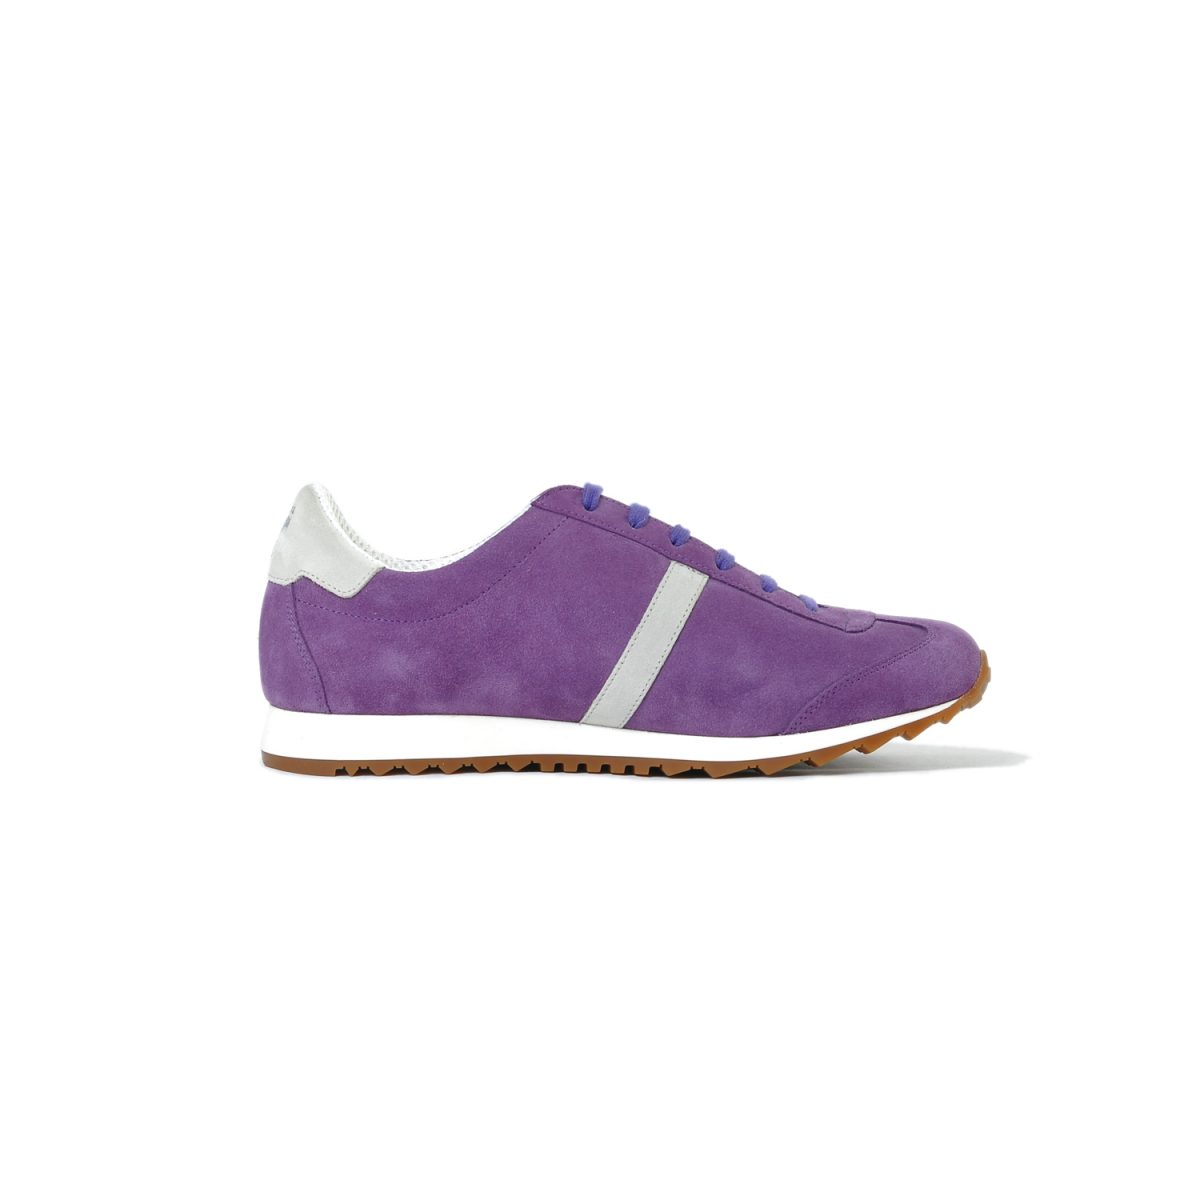 Tisza shoes - Martfű - Purple-nude